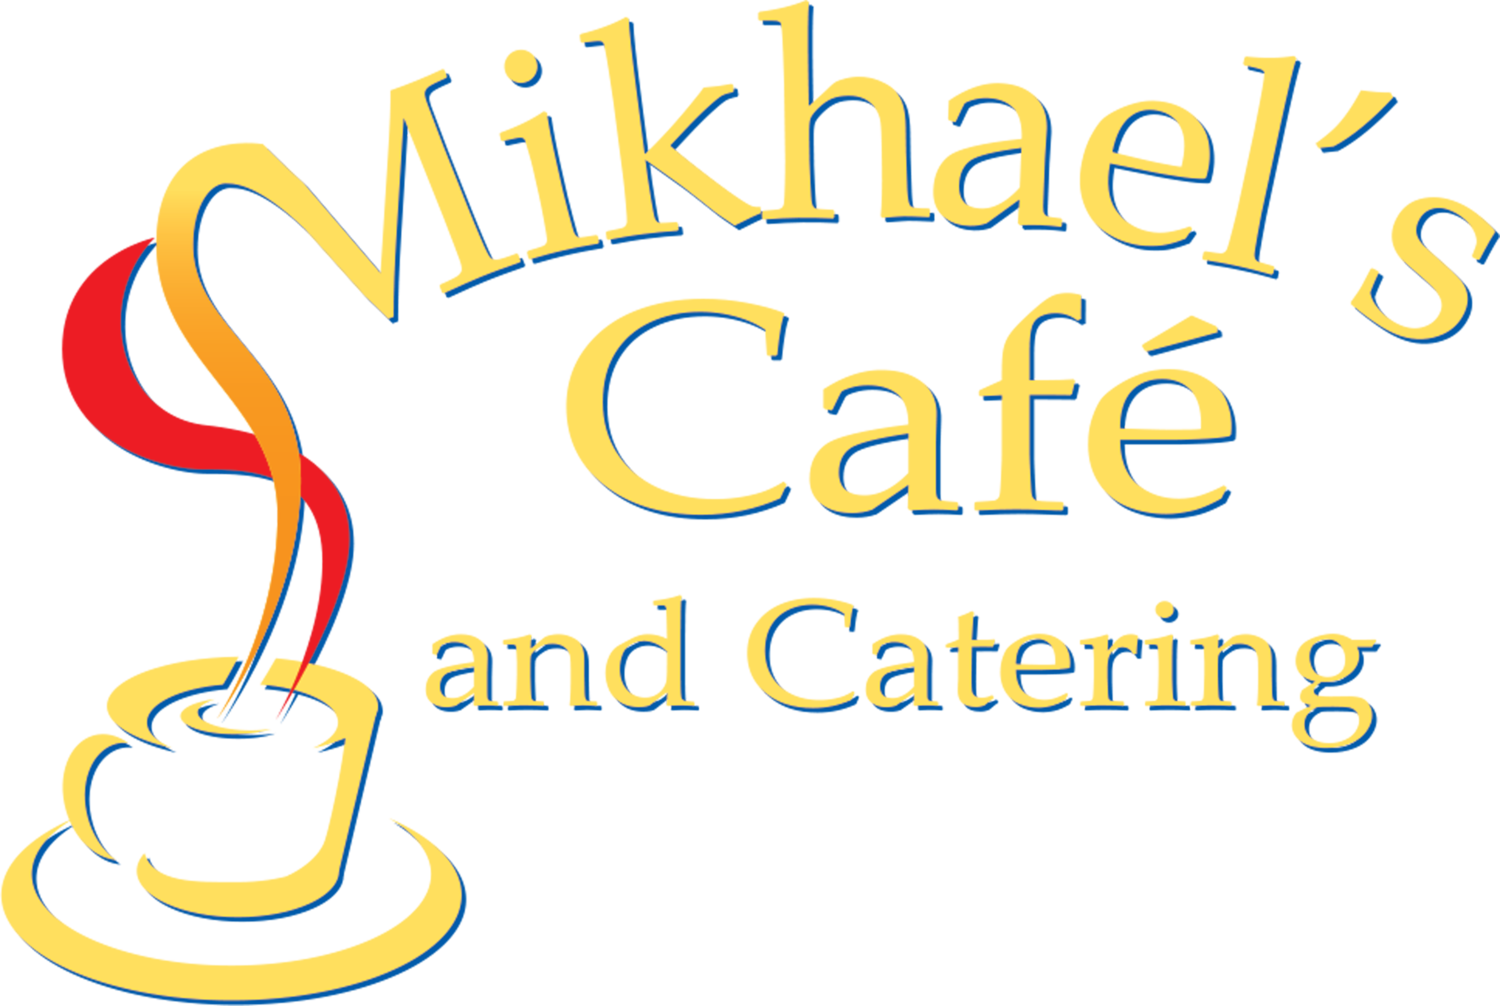 Mikhael's Cafe & Catering